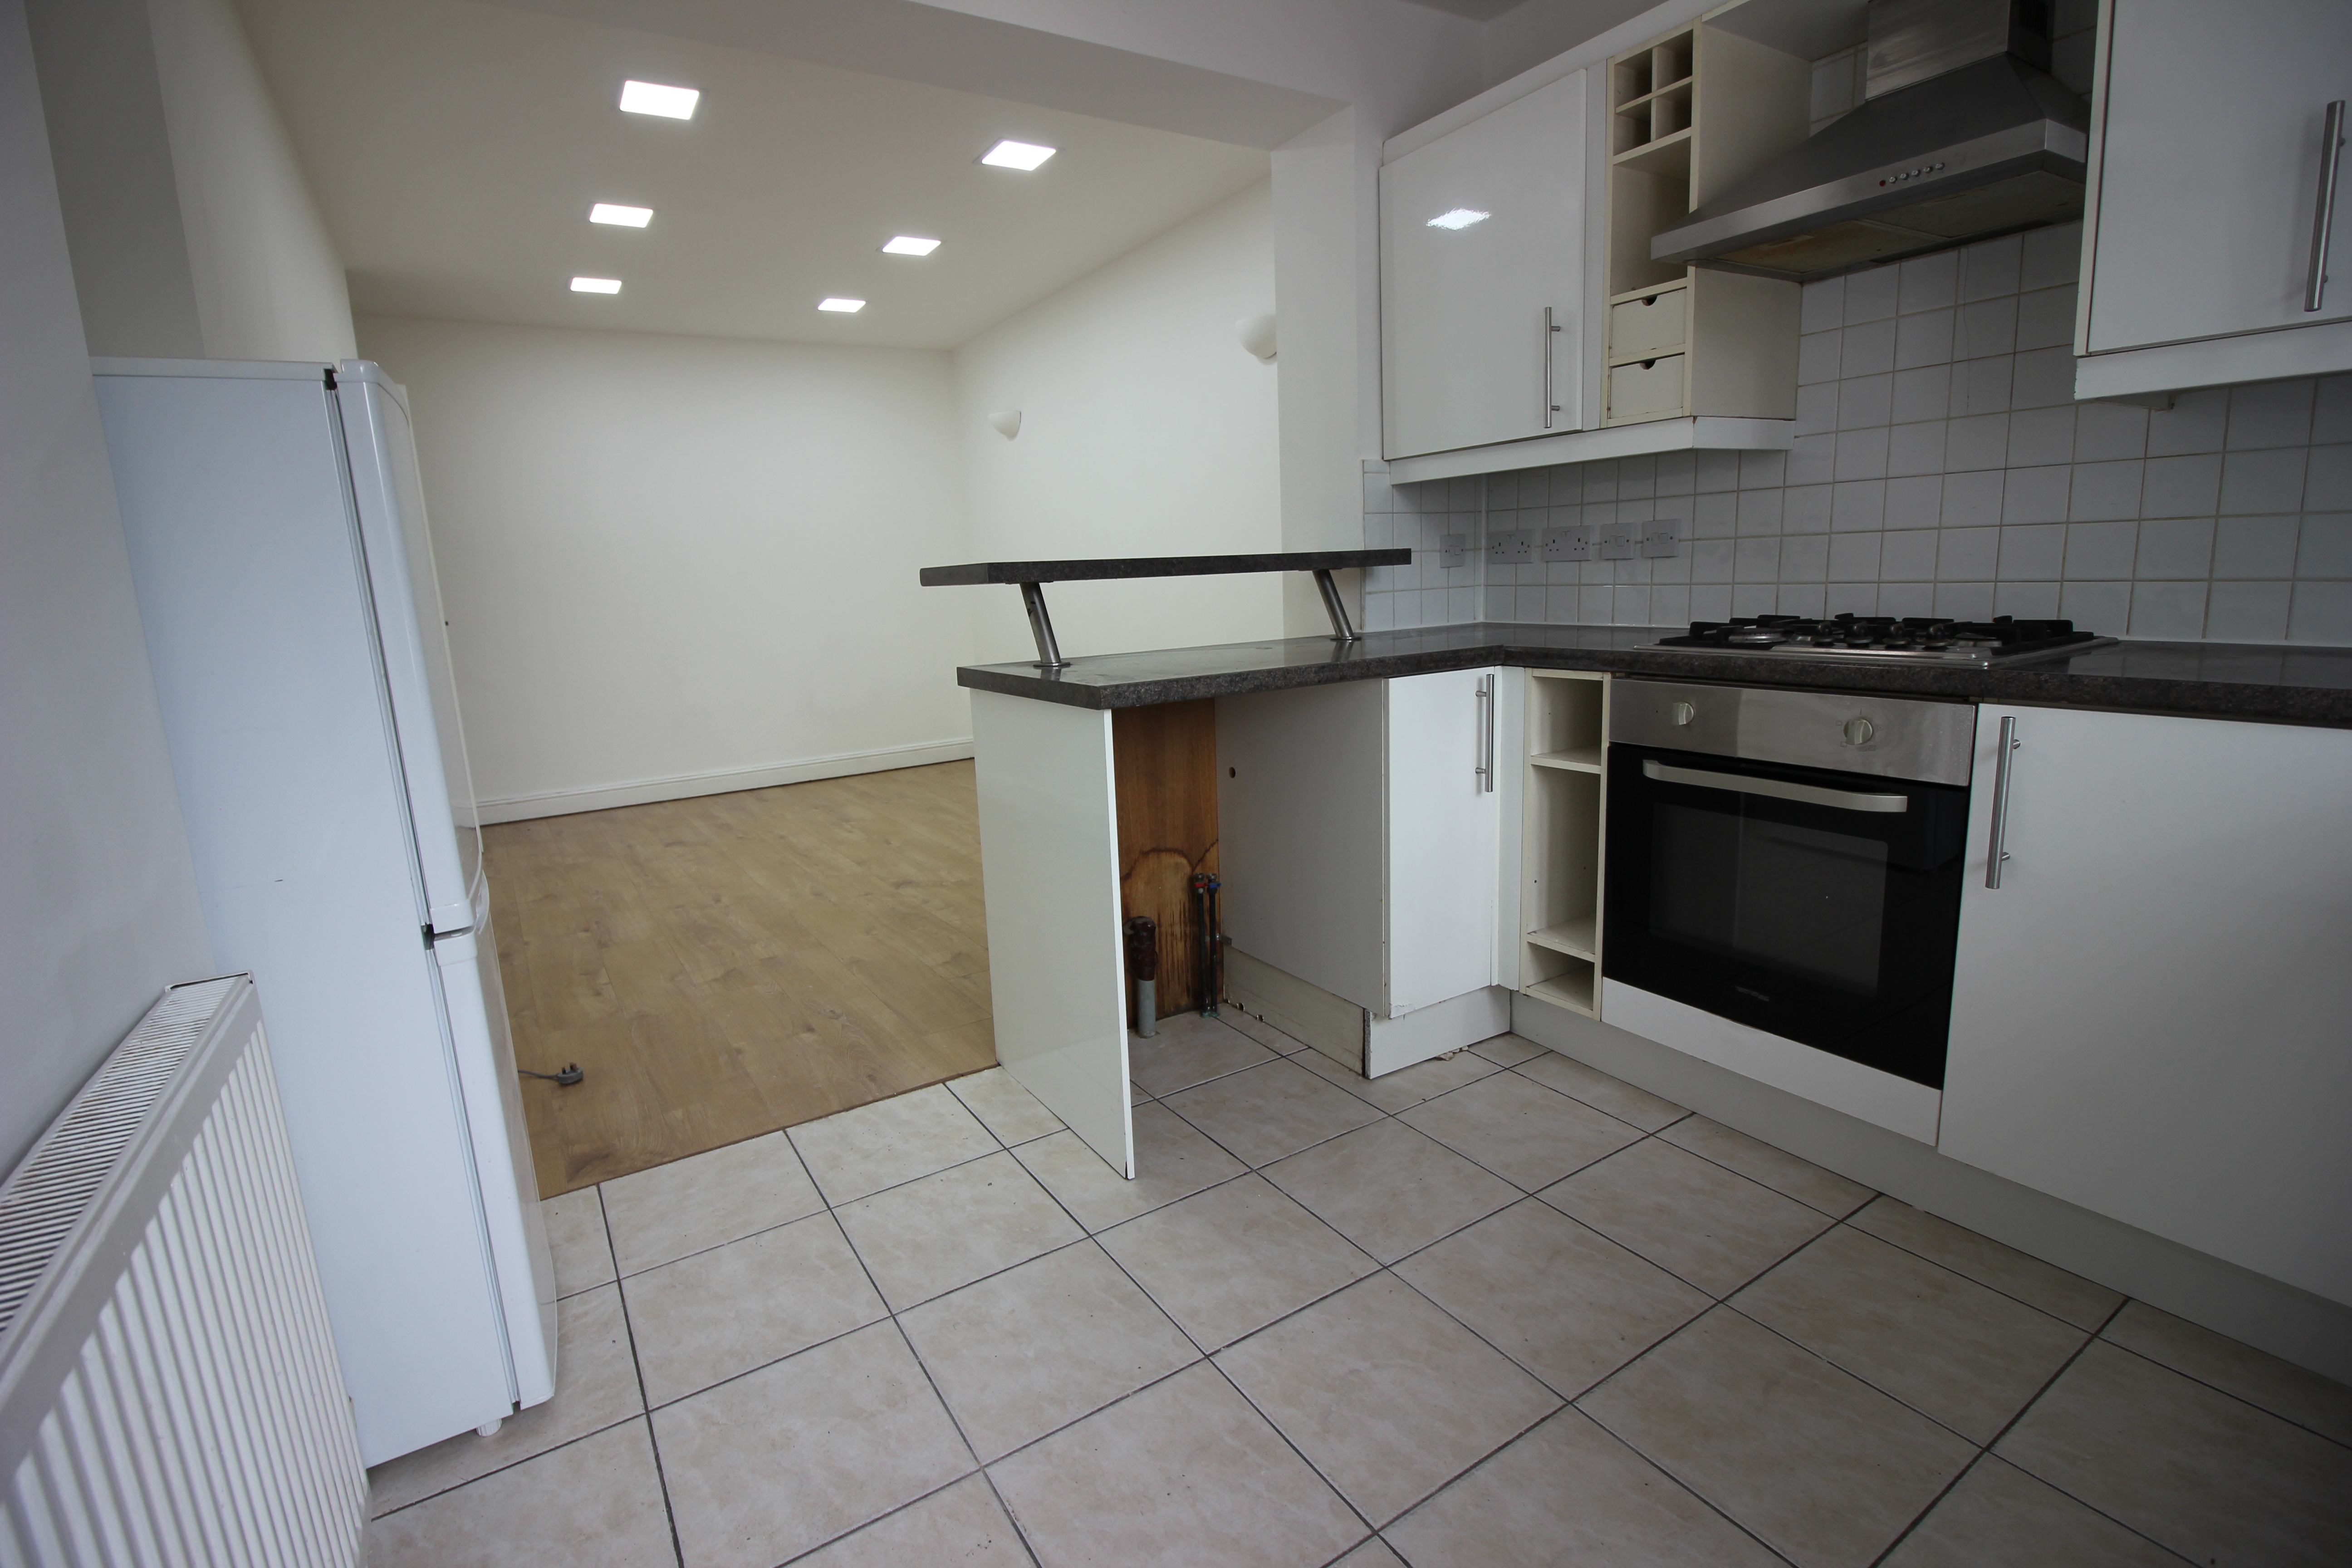 Single Room For Rent On Dss In North West London